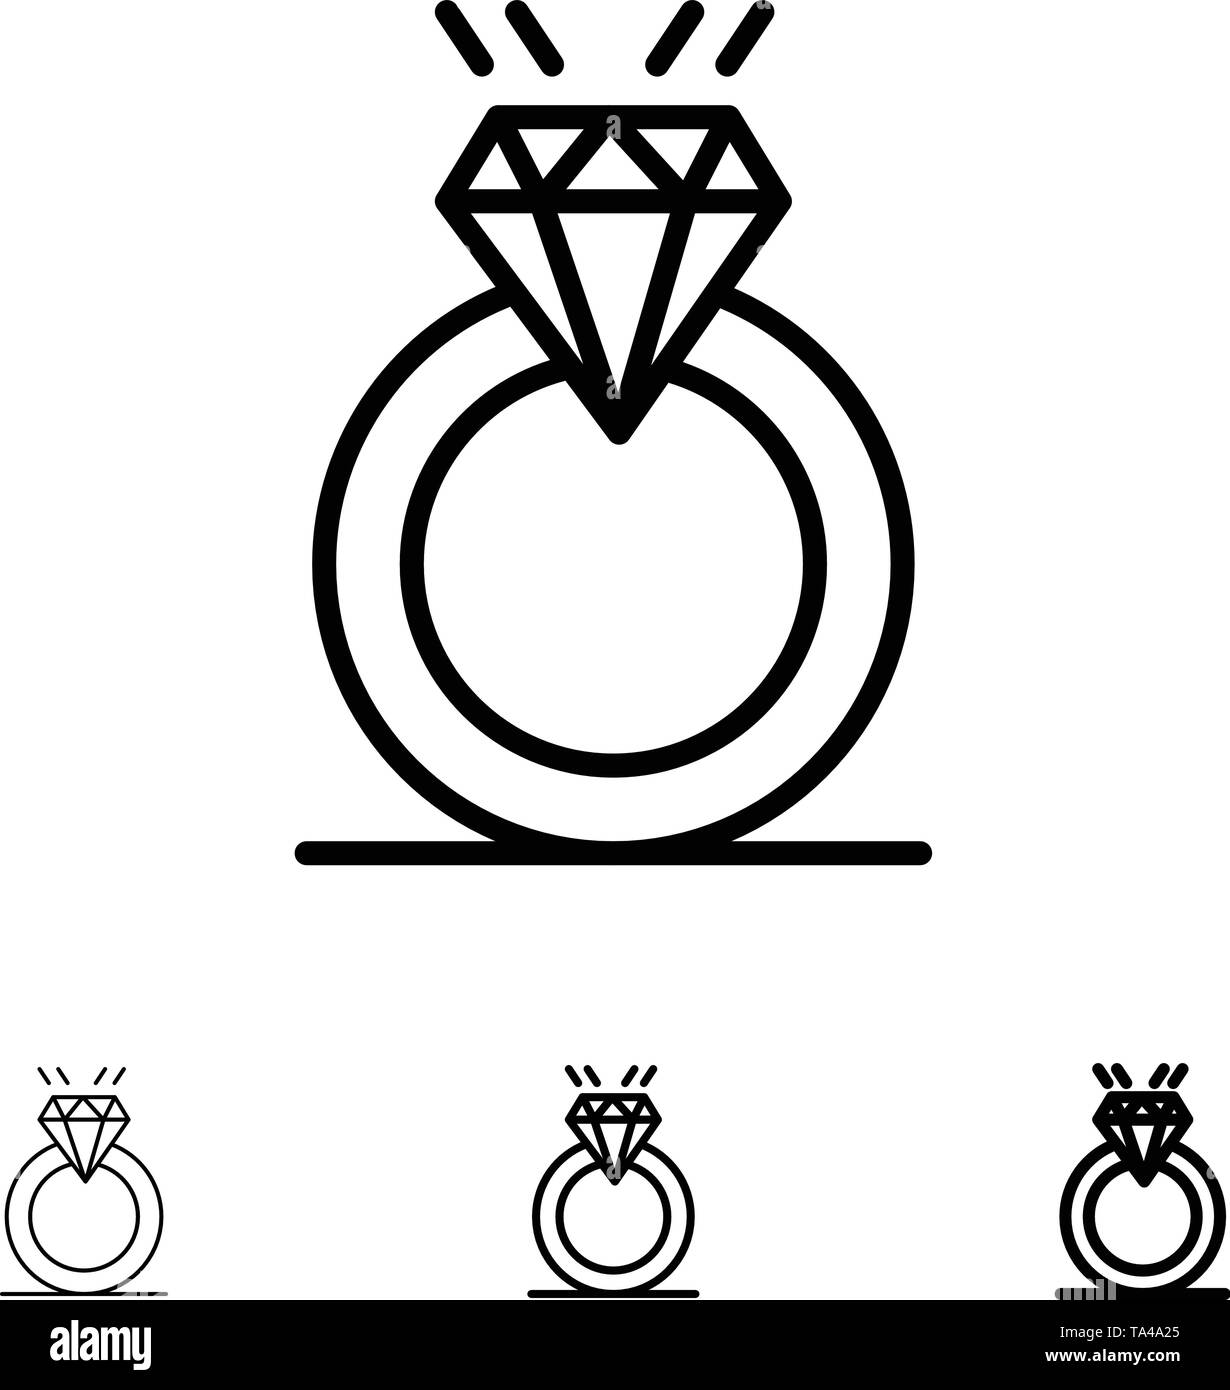 Ring, Diamond, Proposal, Marriage, Love Bold and thin black line icon set - Stock Image